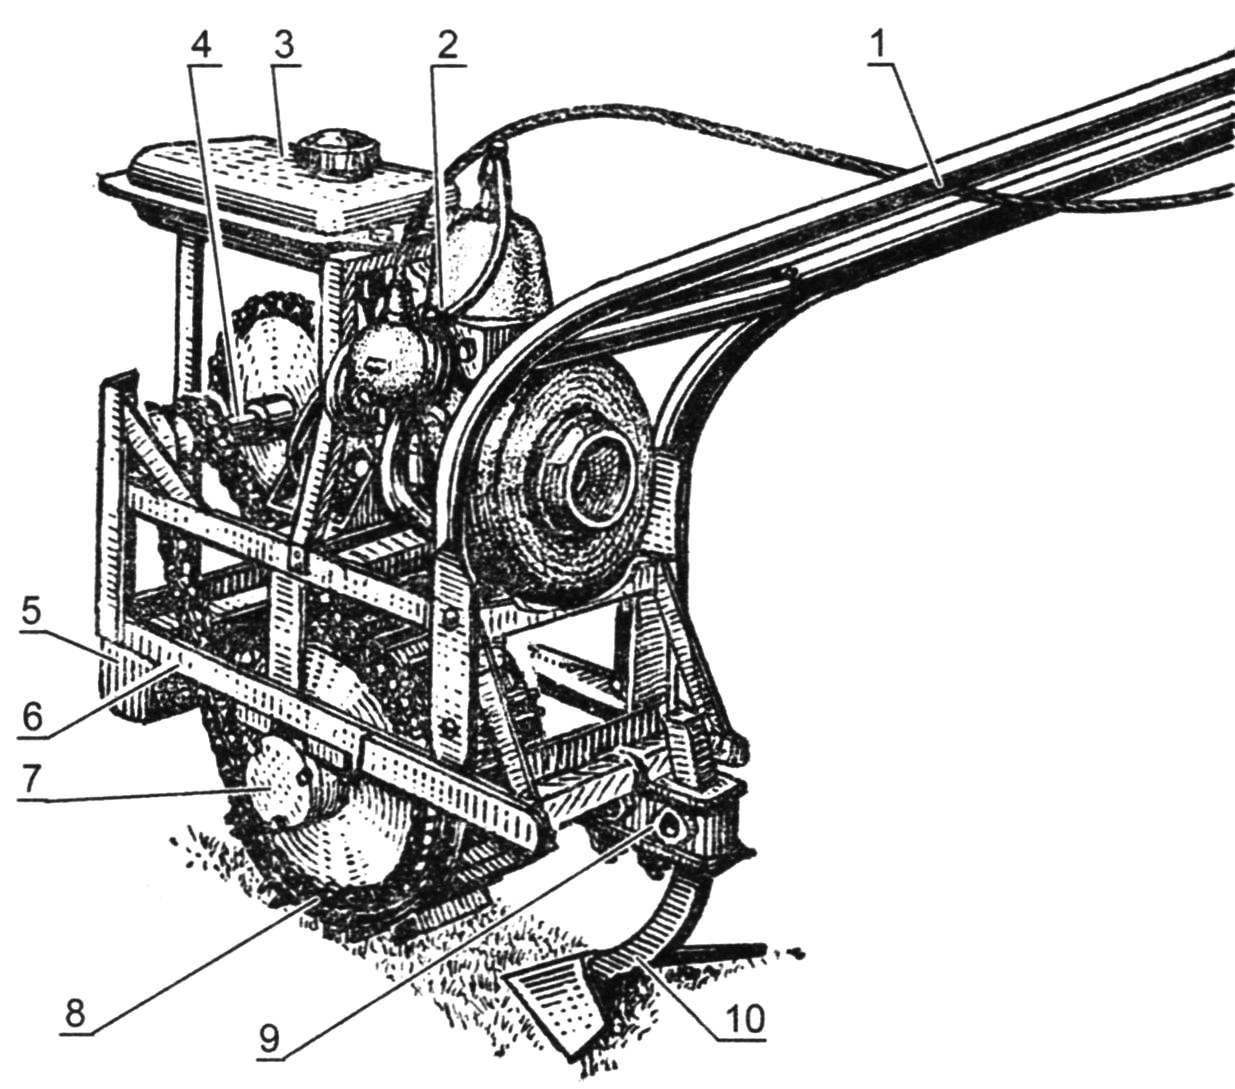 The General kind of one-wheeled motor-plow